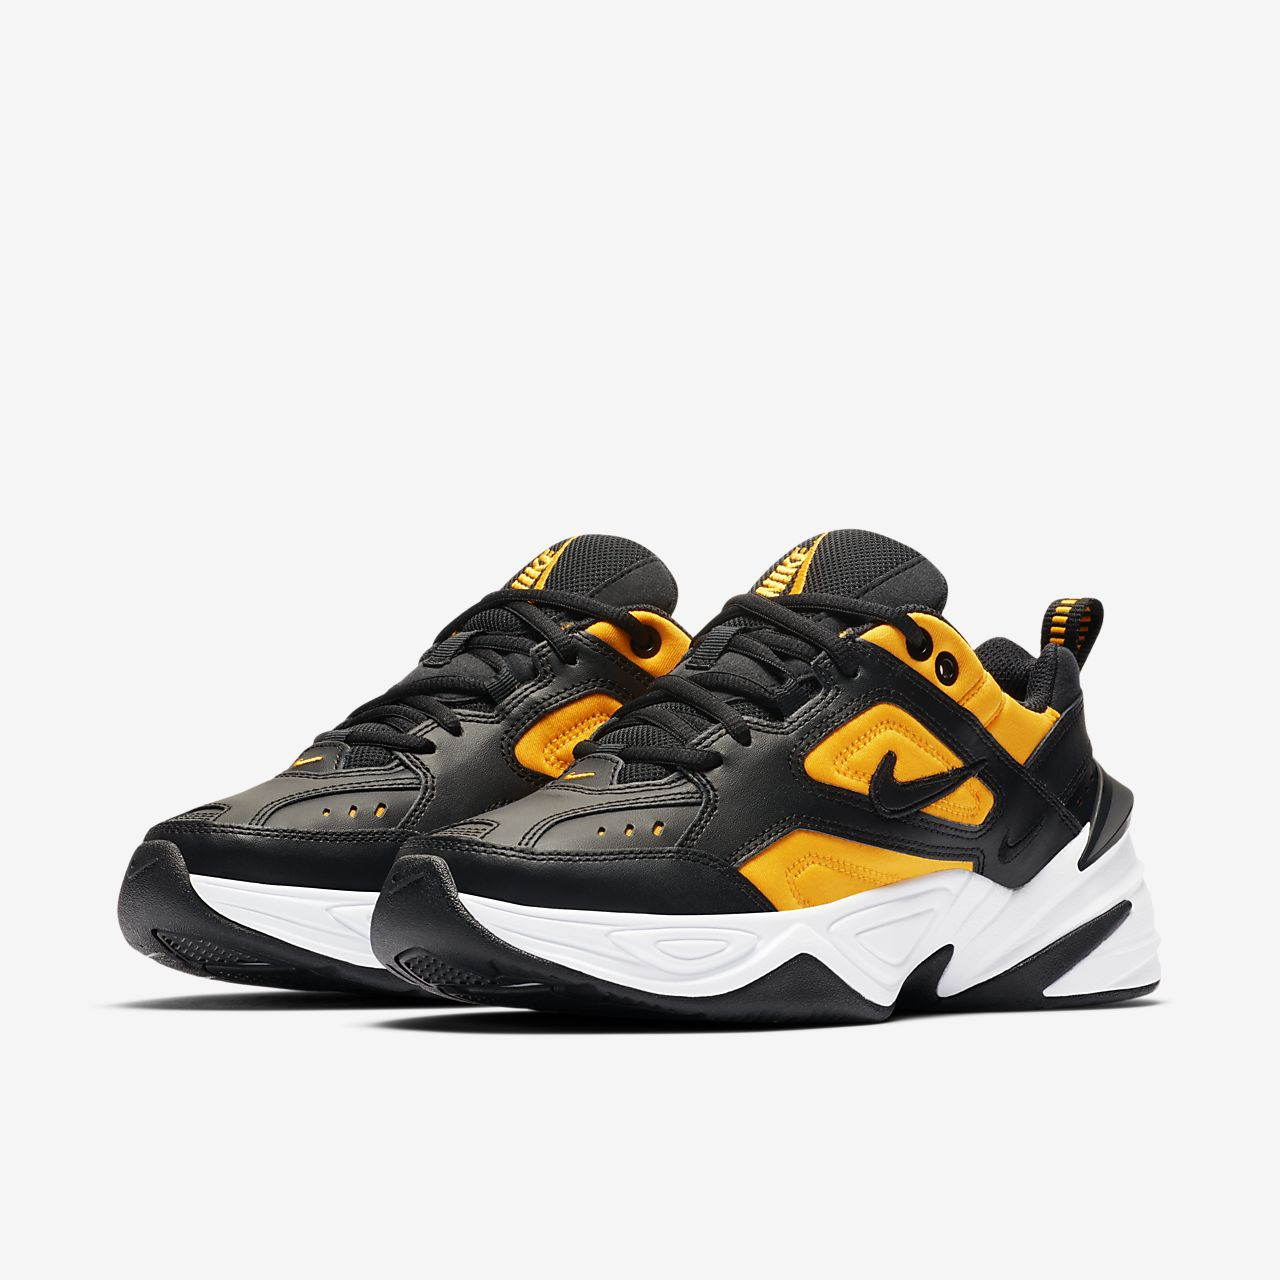 pretty nice e8d14 2c771 Low Resolution Chaussure Nike M2K Tekno Chaussure Nike M2K Tekno